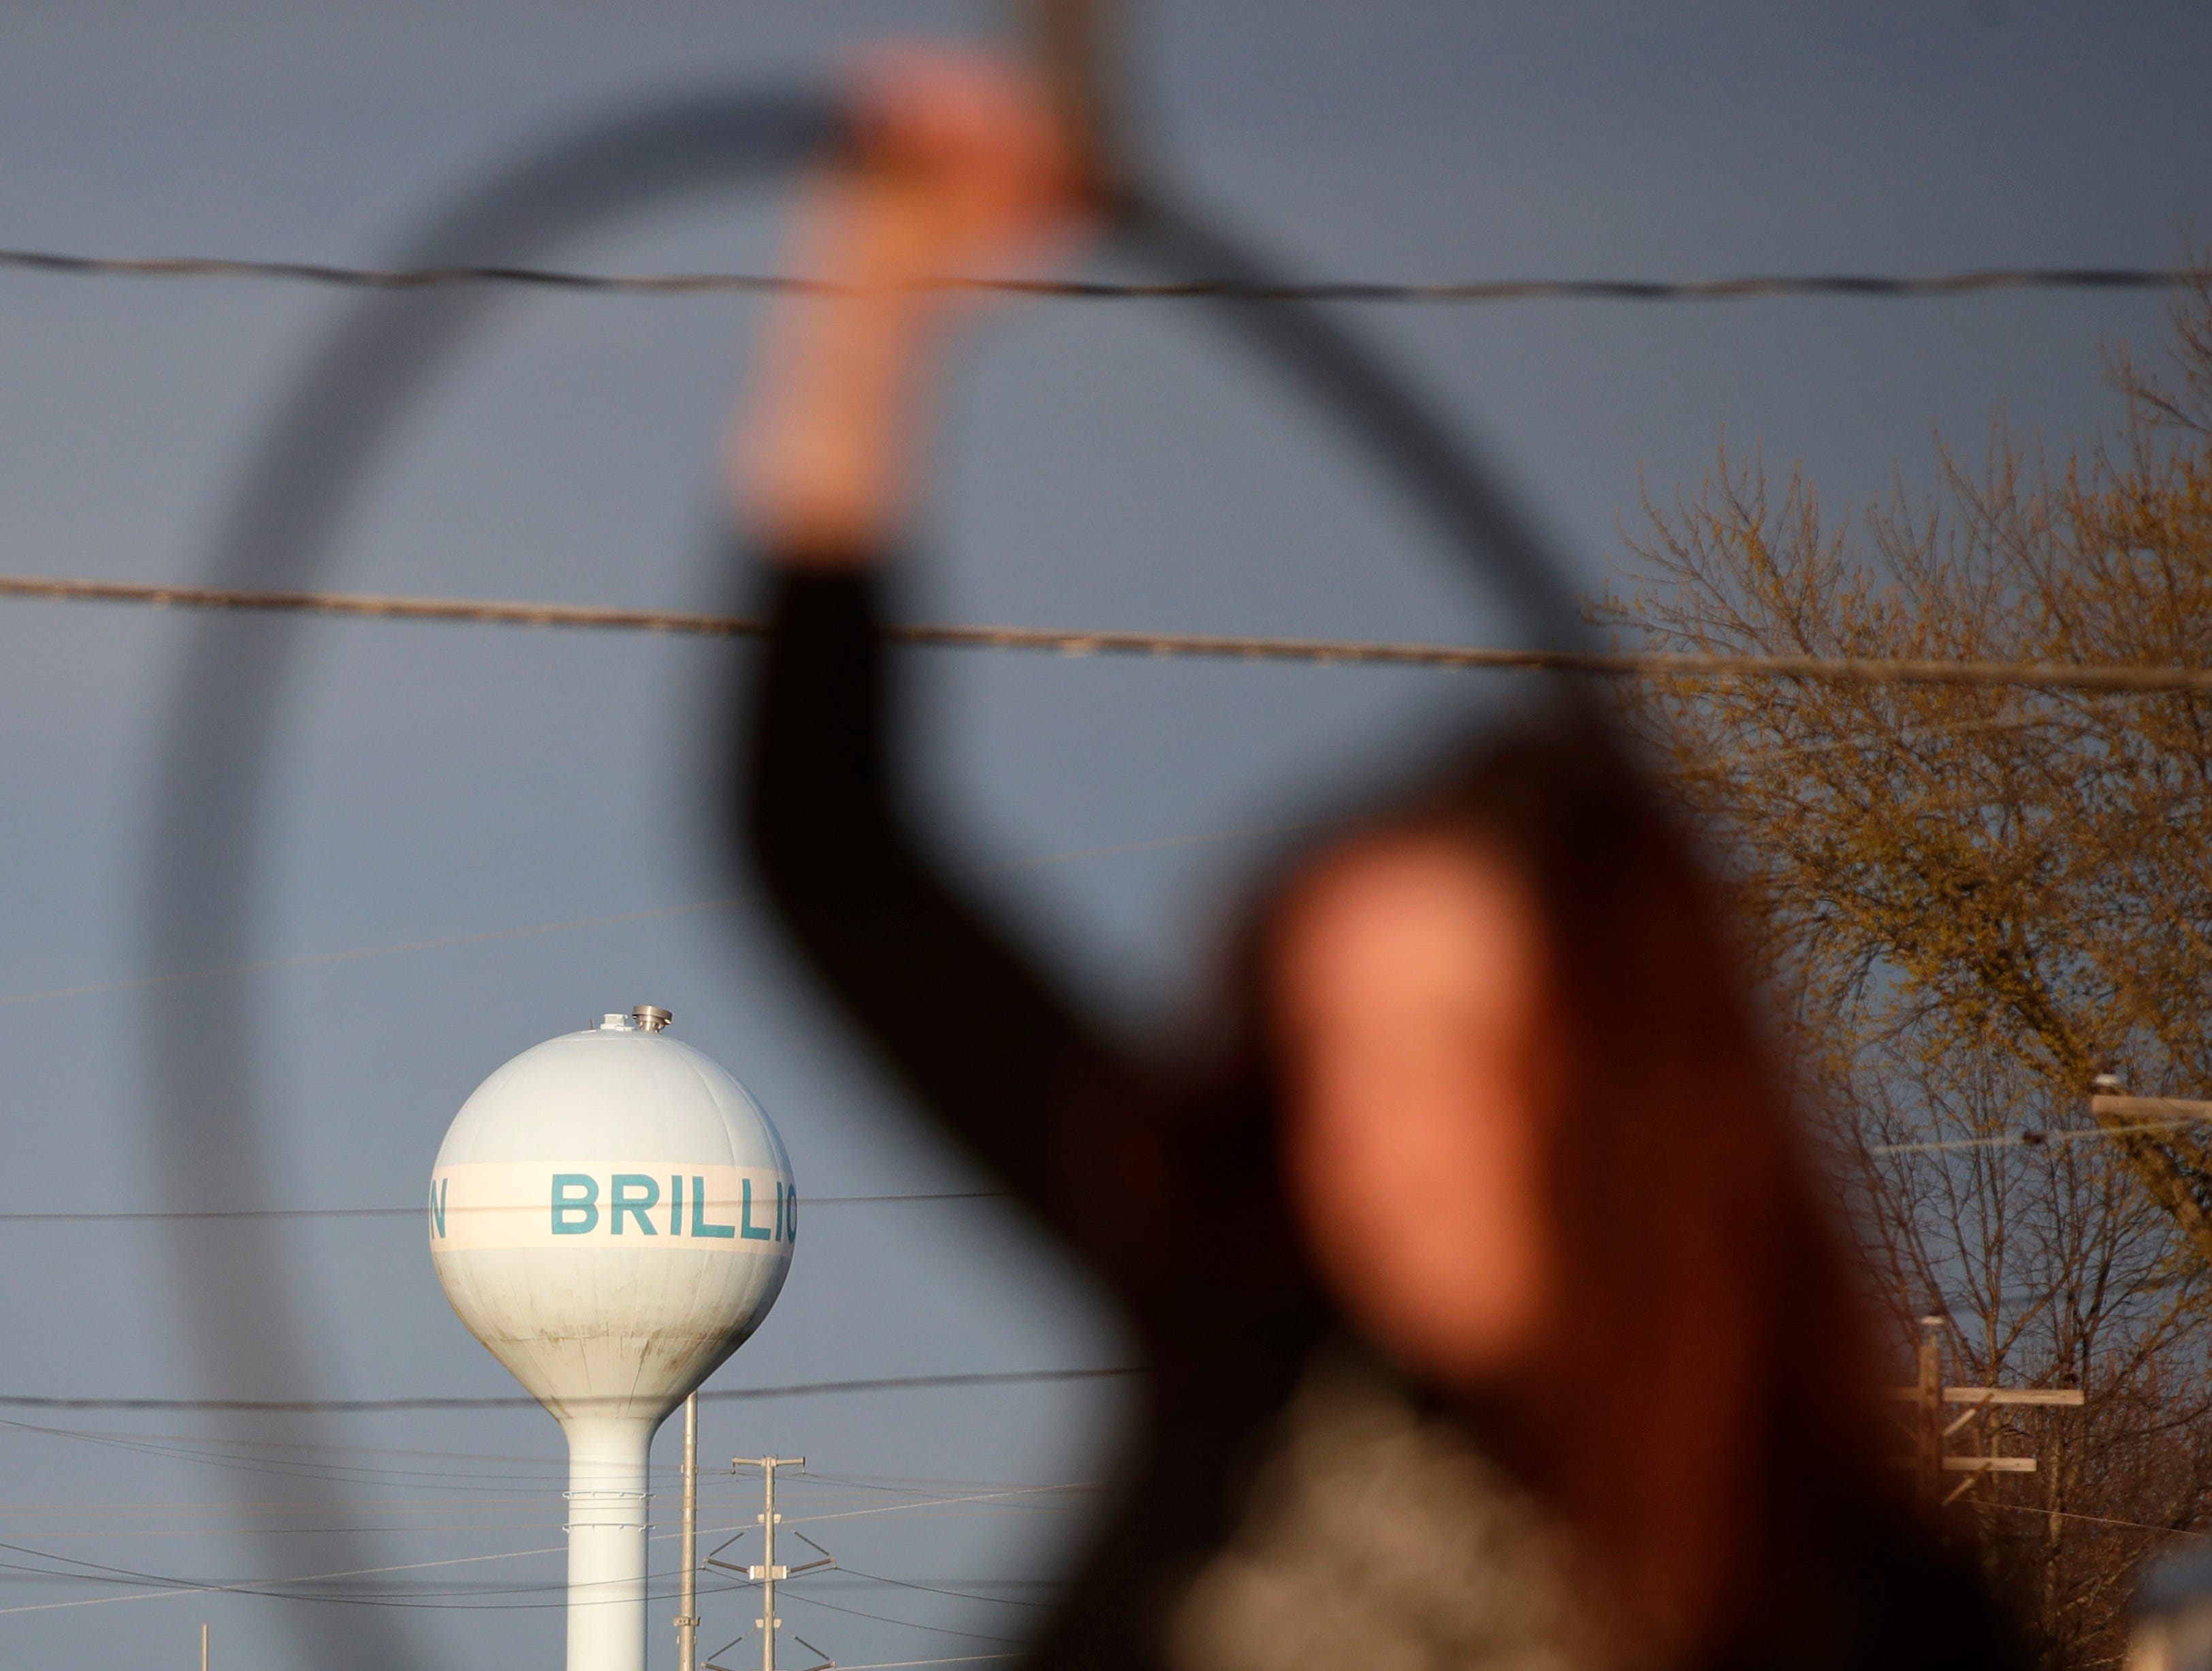 The Brillion water tower can be seen through the hoop that Amy Hart, with Aerial Dance, perform with during the first Bazaar After Dark of the year Saturday, May 11, 2019, in Brillion, Wis. Danny Damiani/USA TODAY NETWORK-Wisconsin